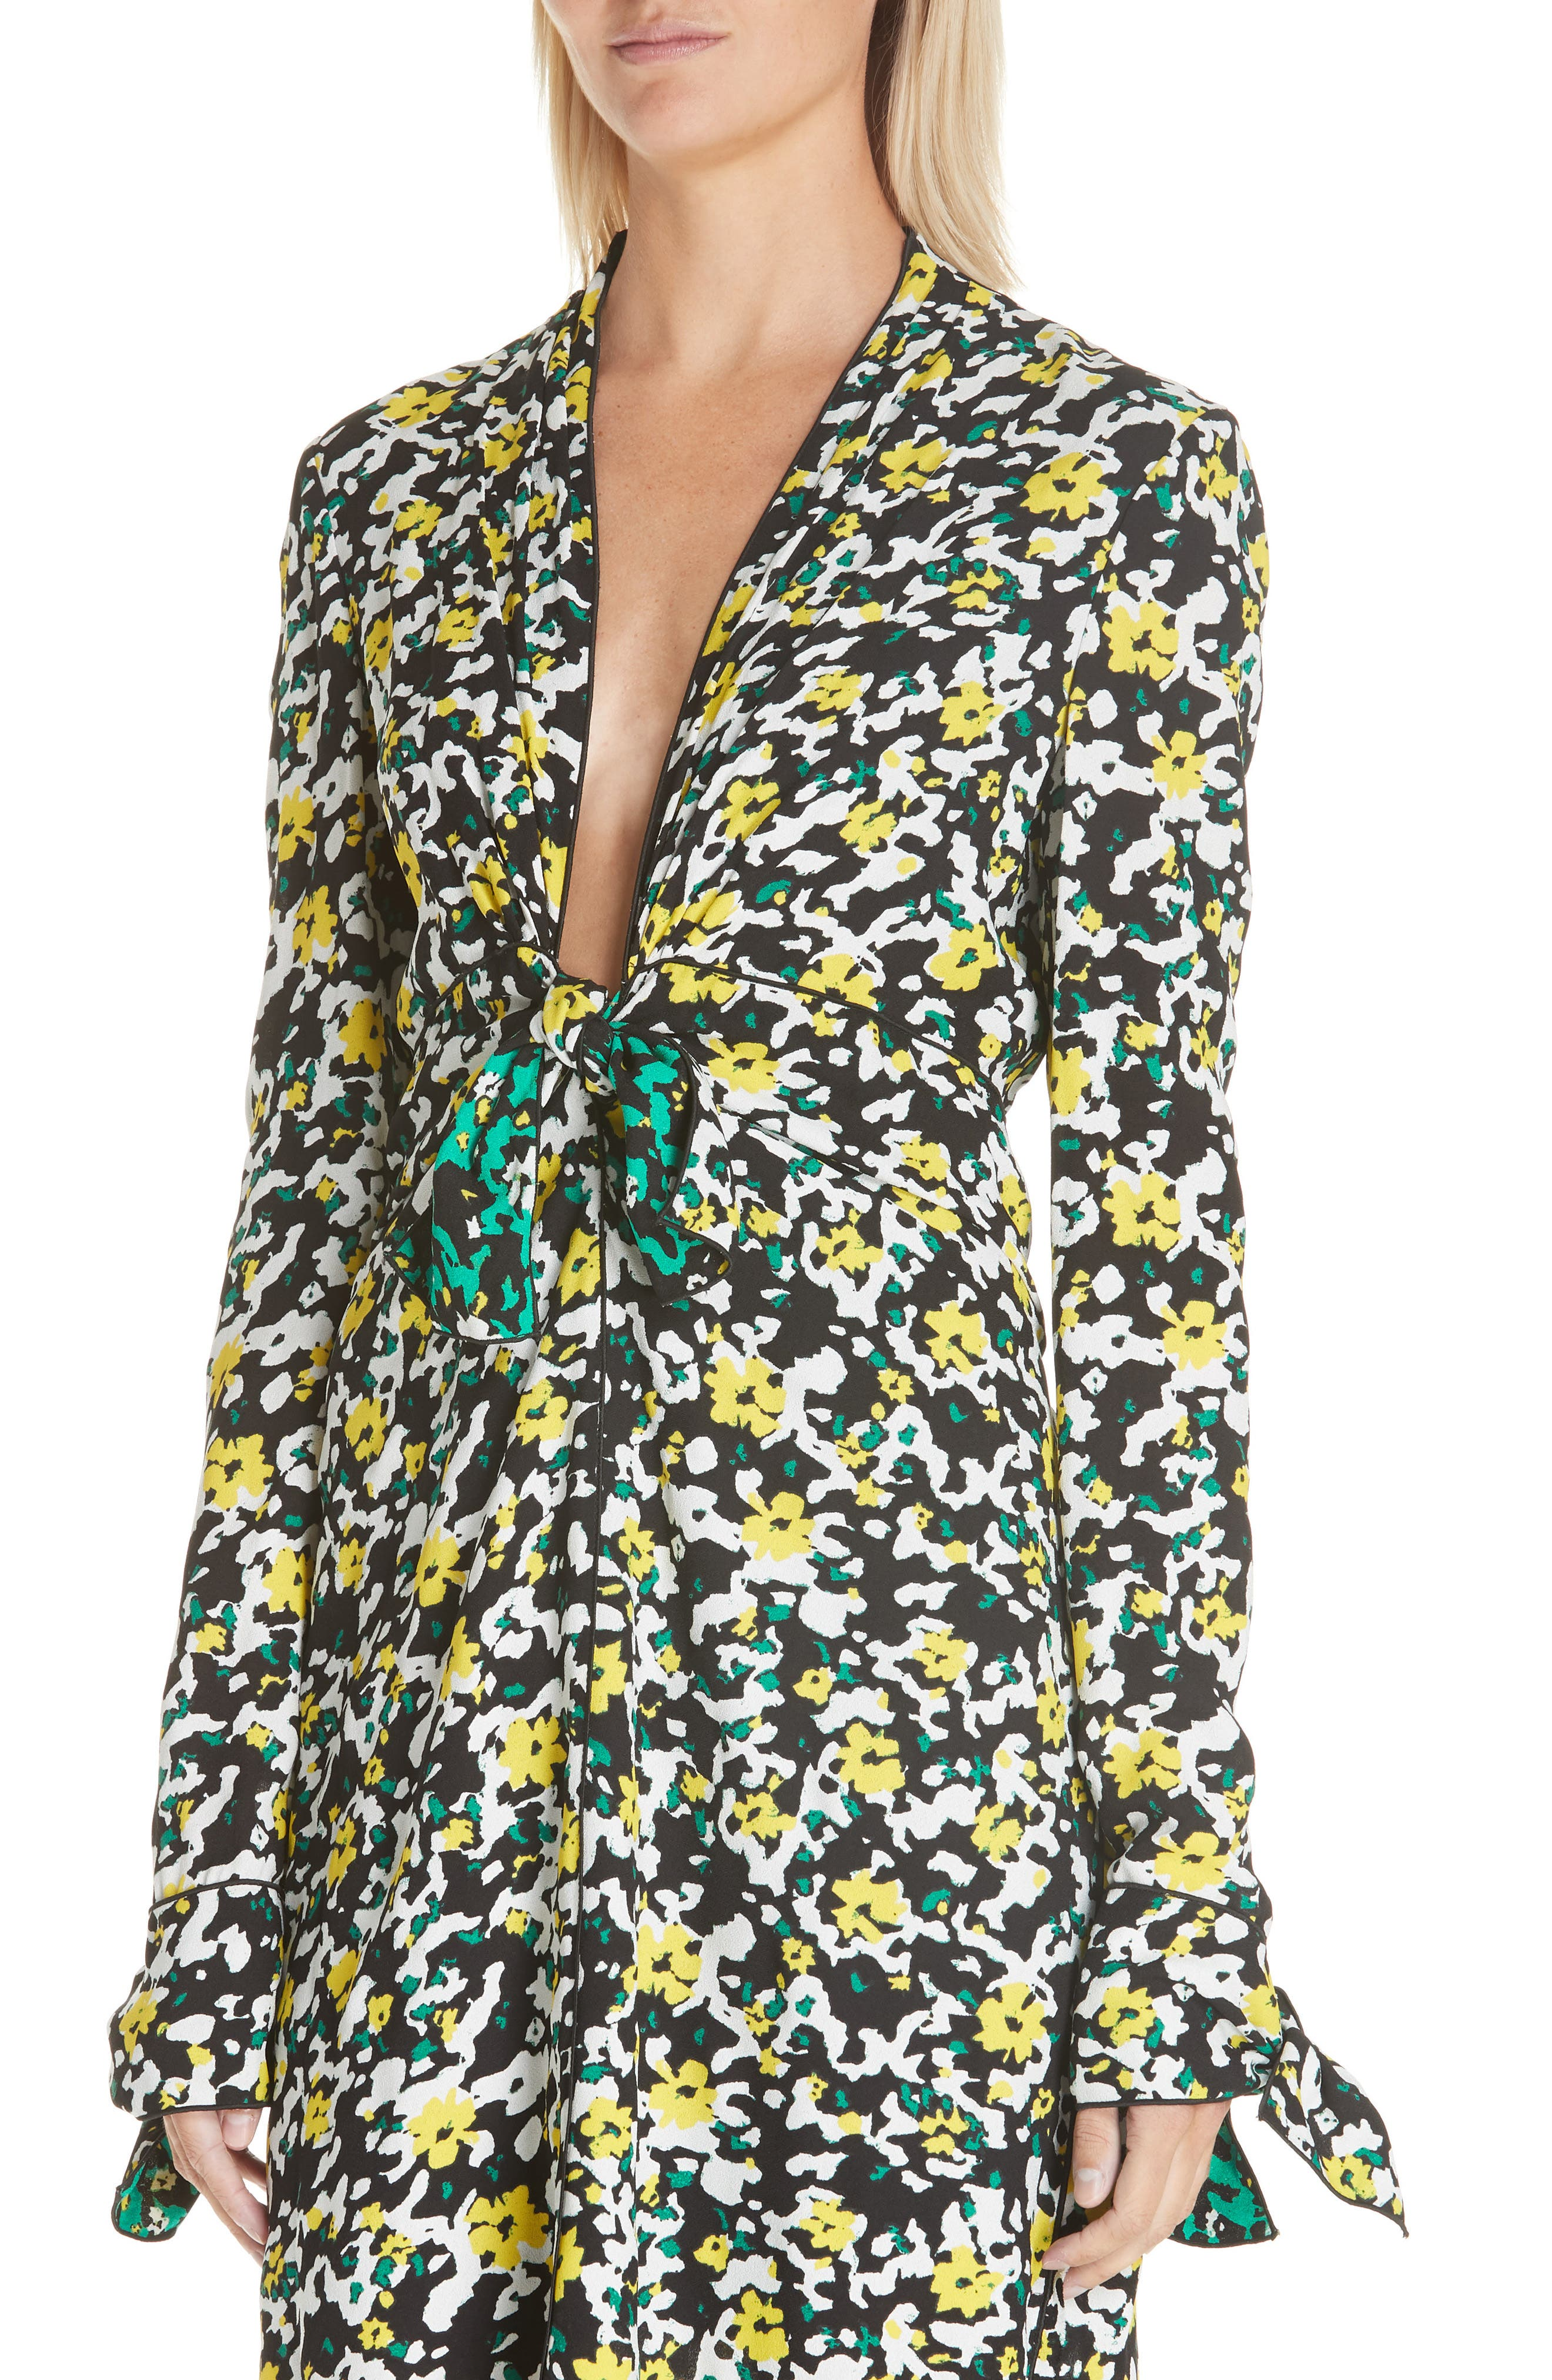 PROENZA SCHOULER, Floral Print Knotted Midi Dress, Alternate thumbnail 5, color, WHITE WILDFLOWER